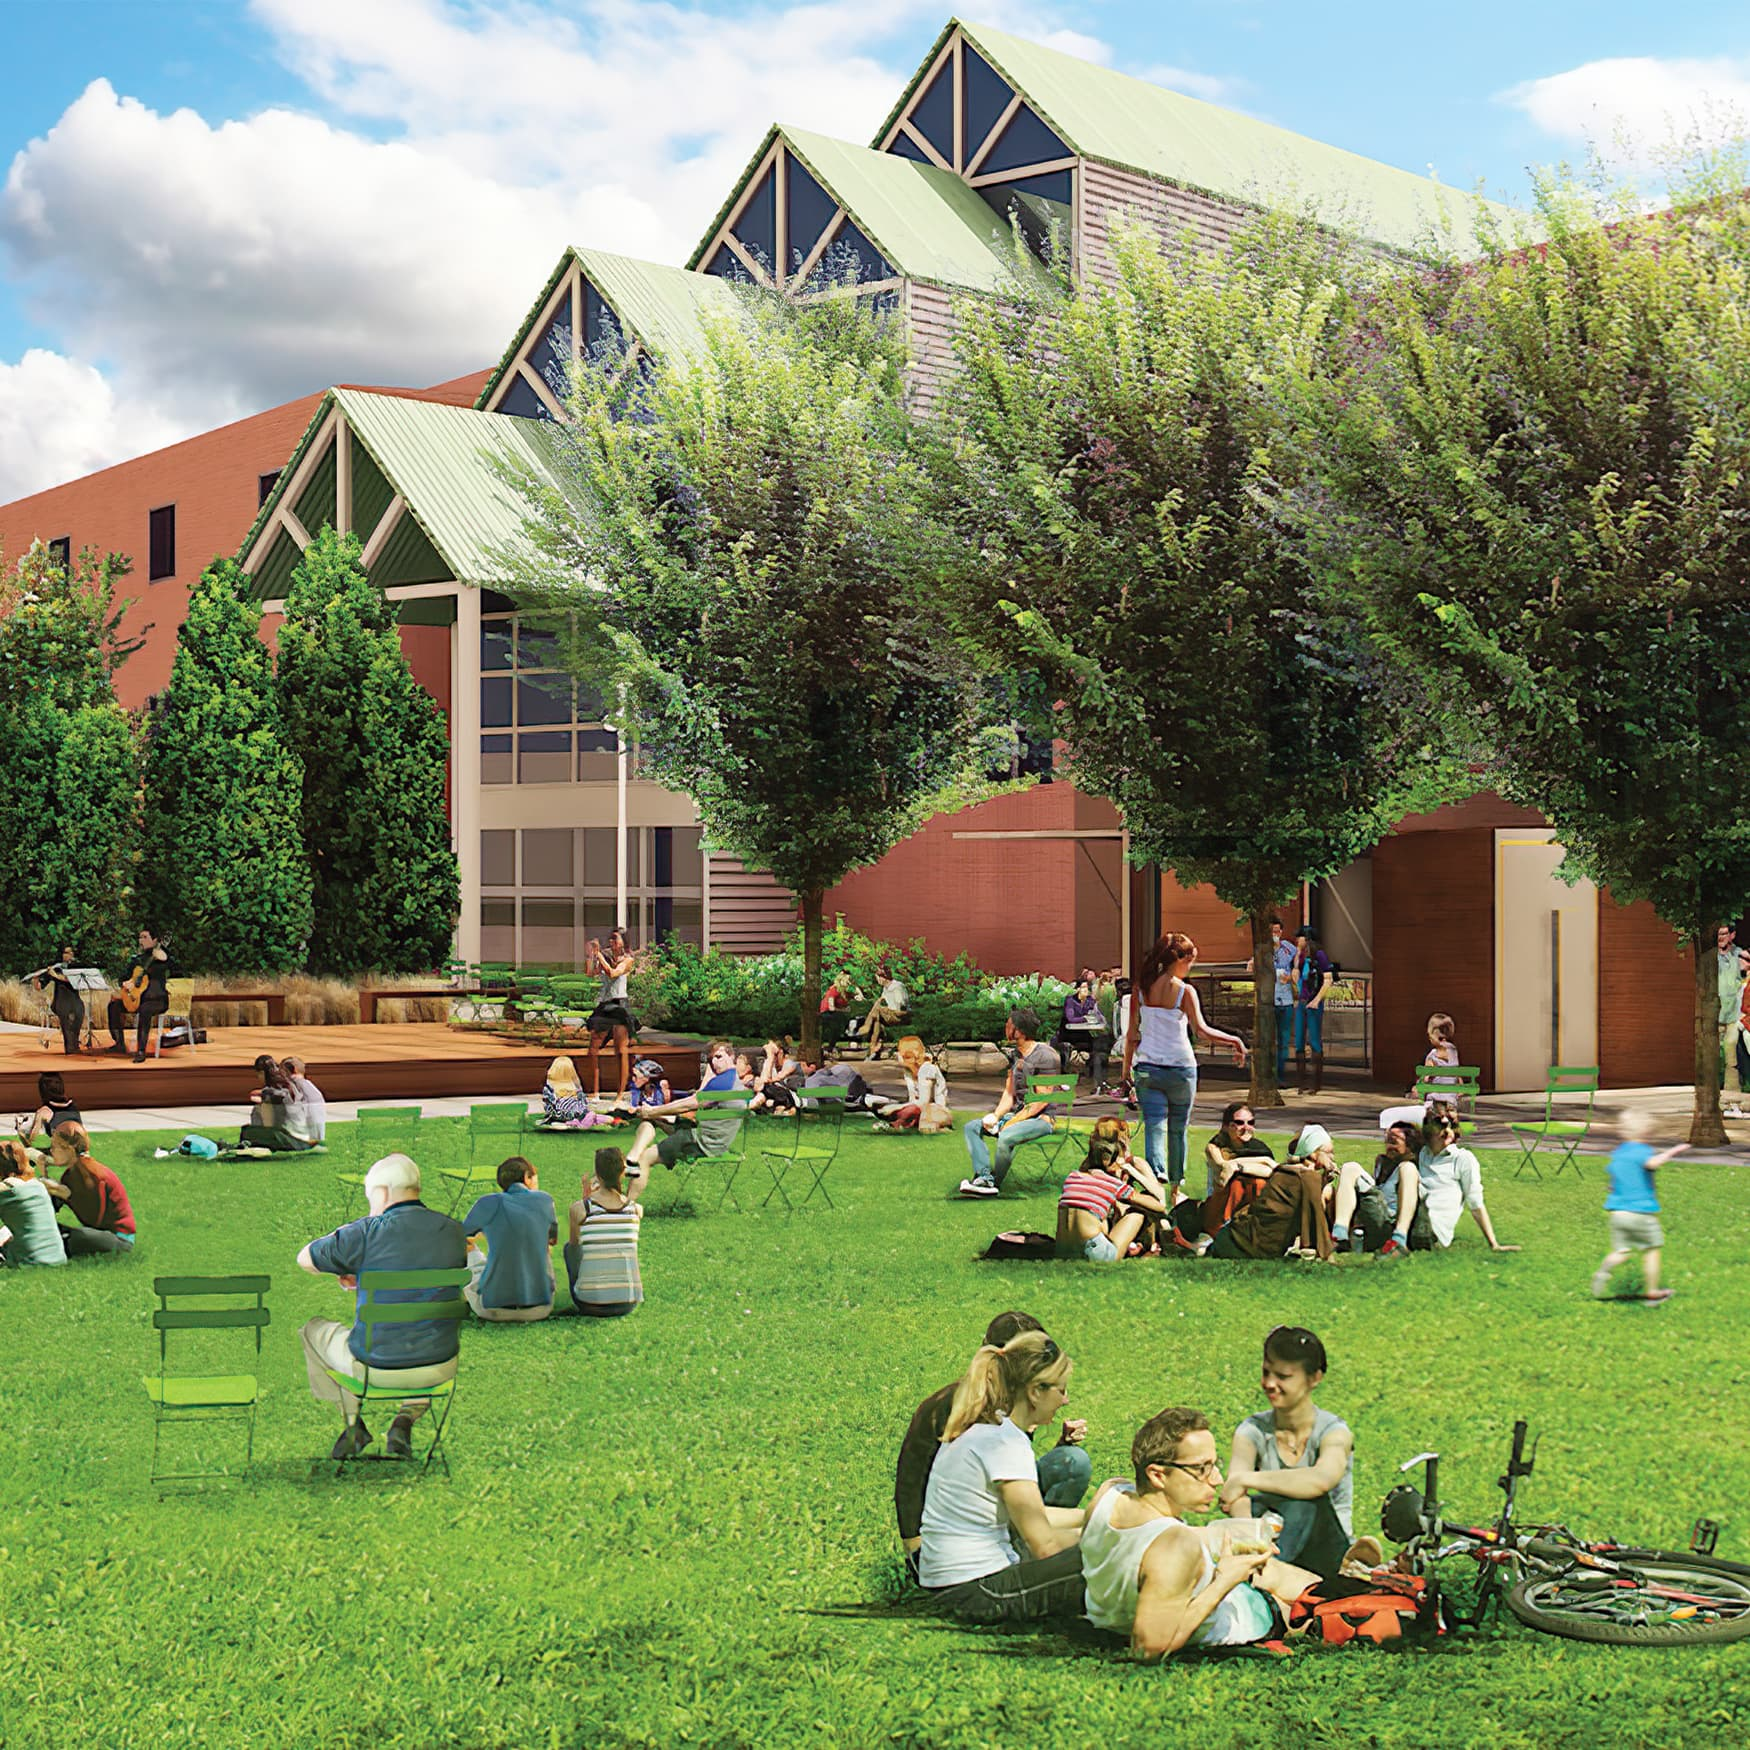 Architectural rendering of people gathering at LeBauer Park